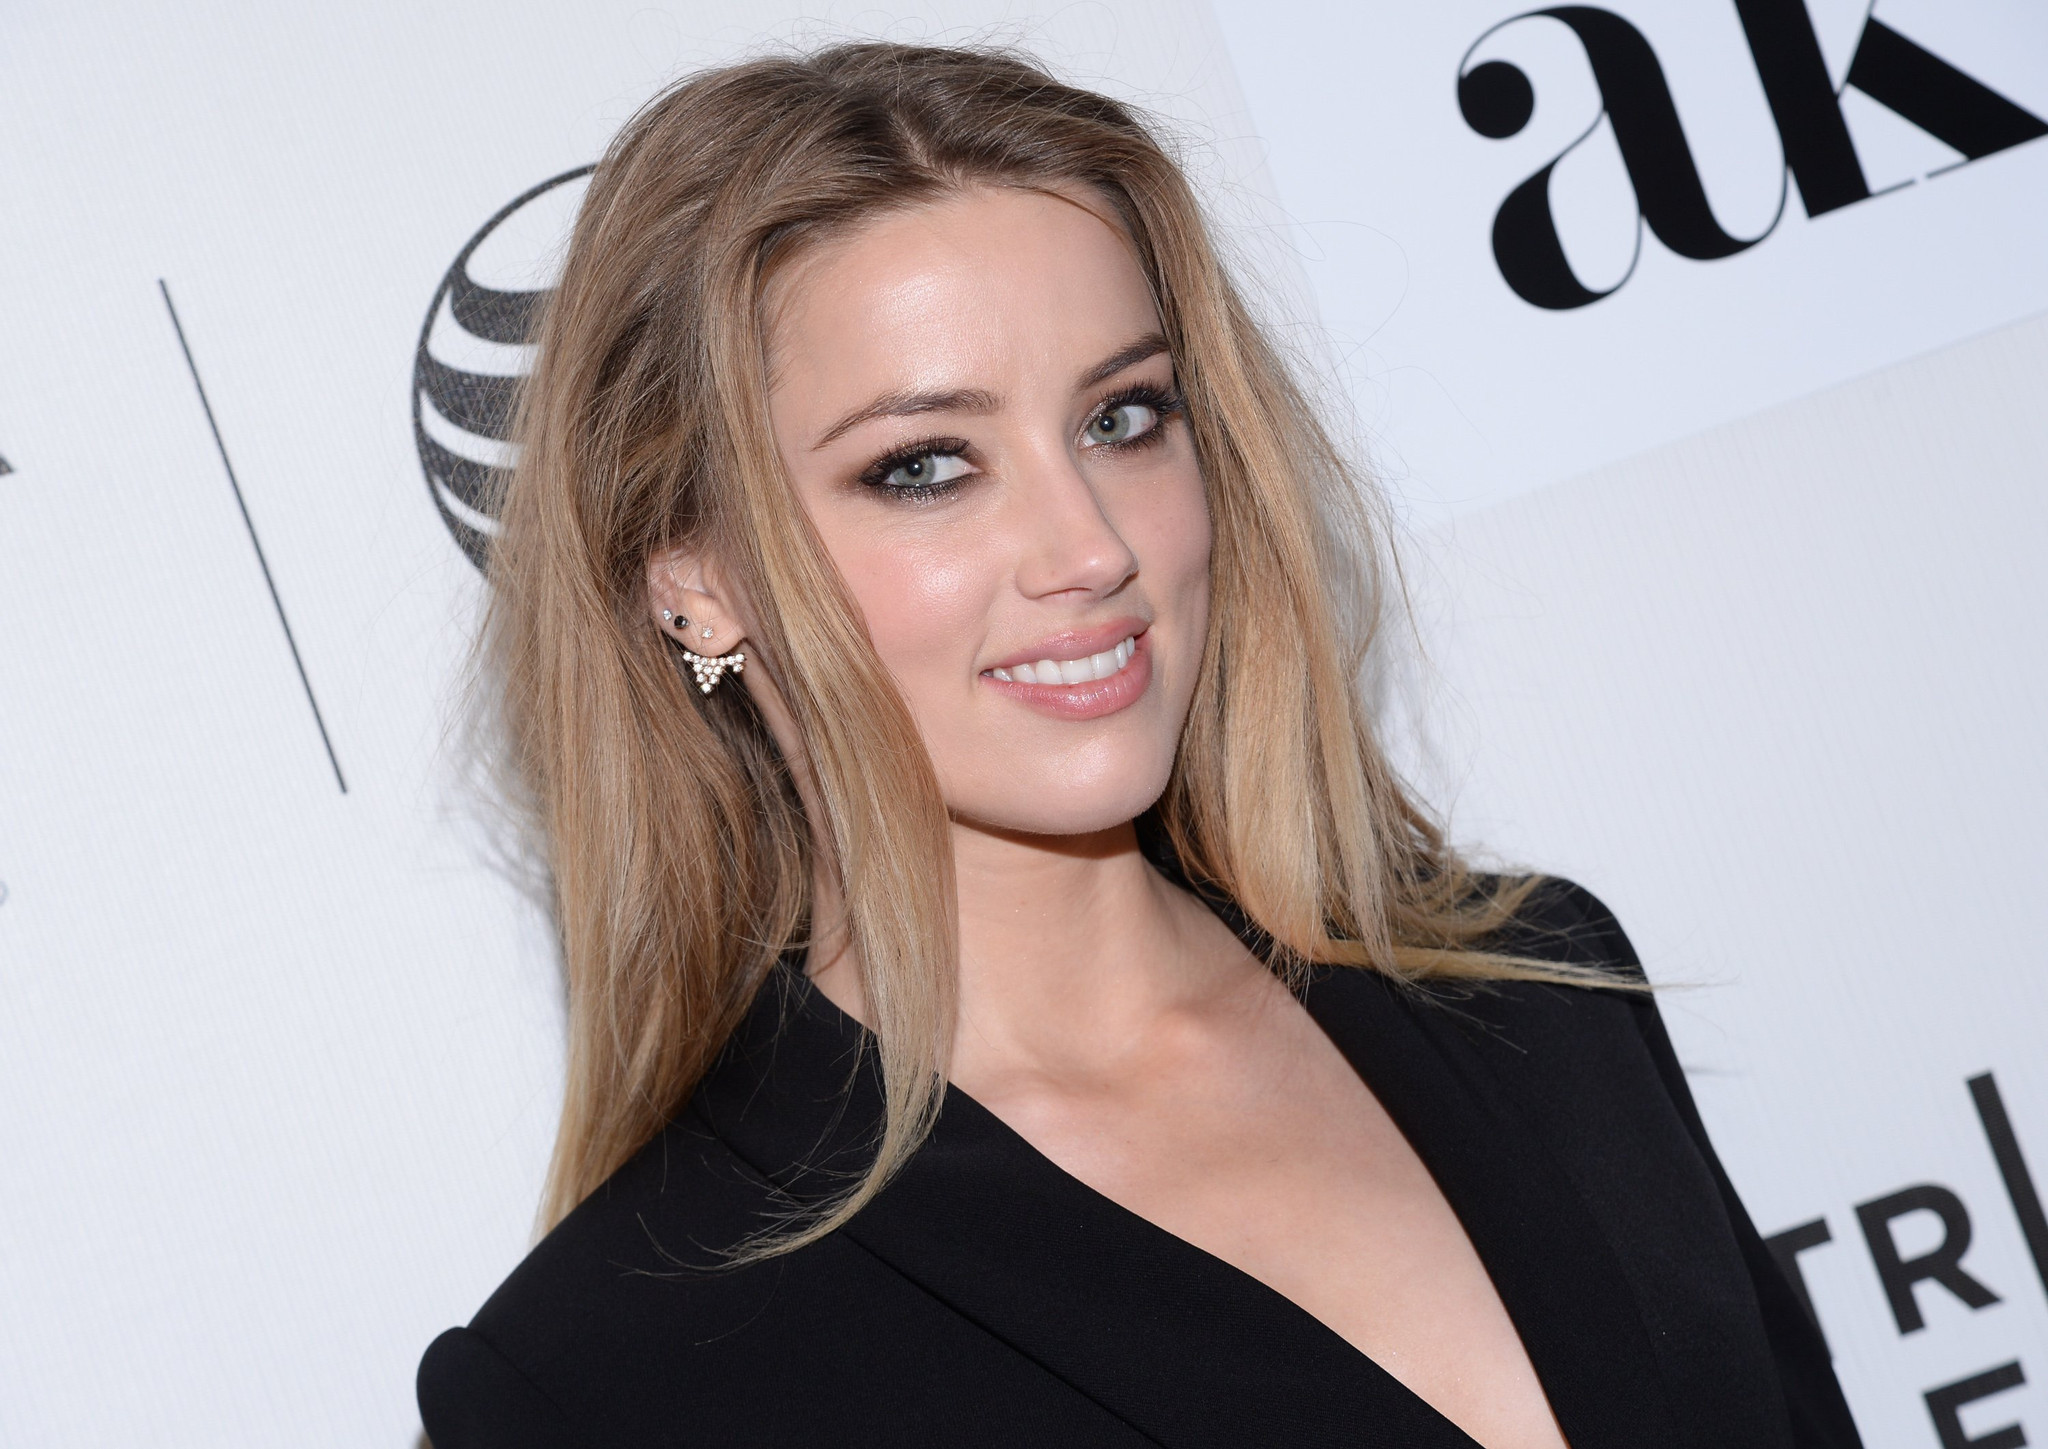 Amber Heard Amber Heard, Elon Musk downplay dinner date with matching Instagram posts -  LA Times